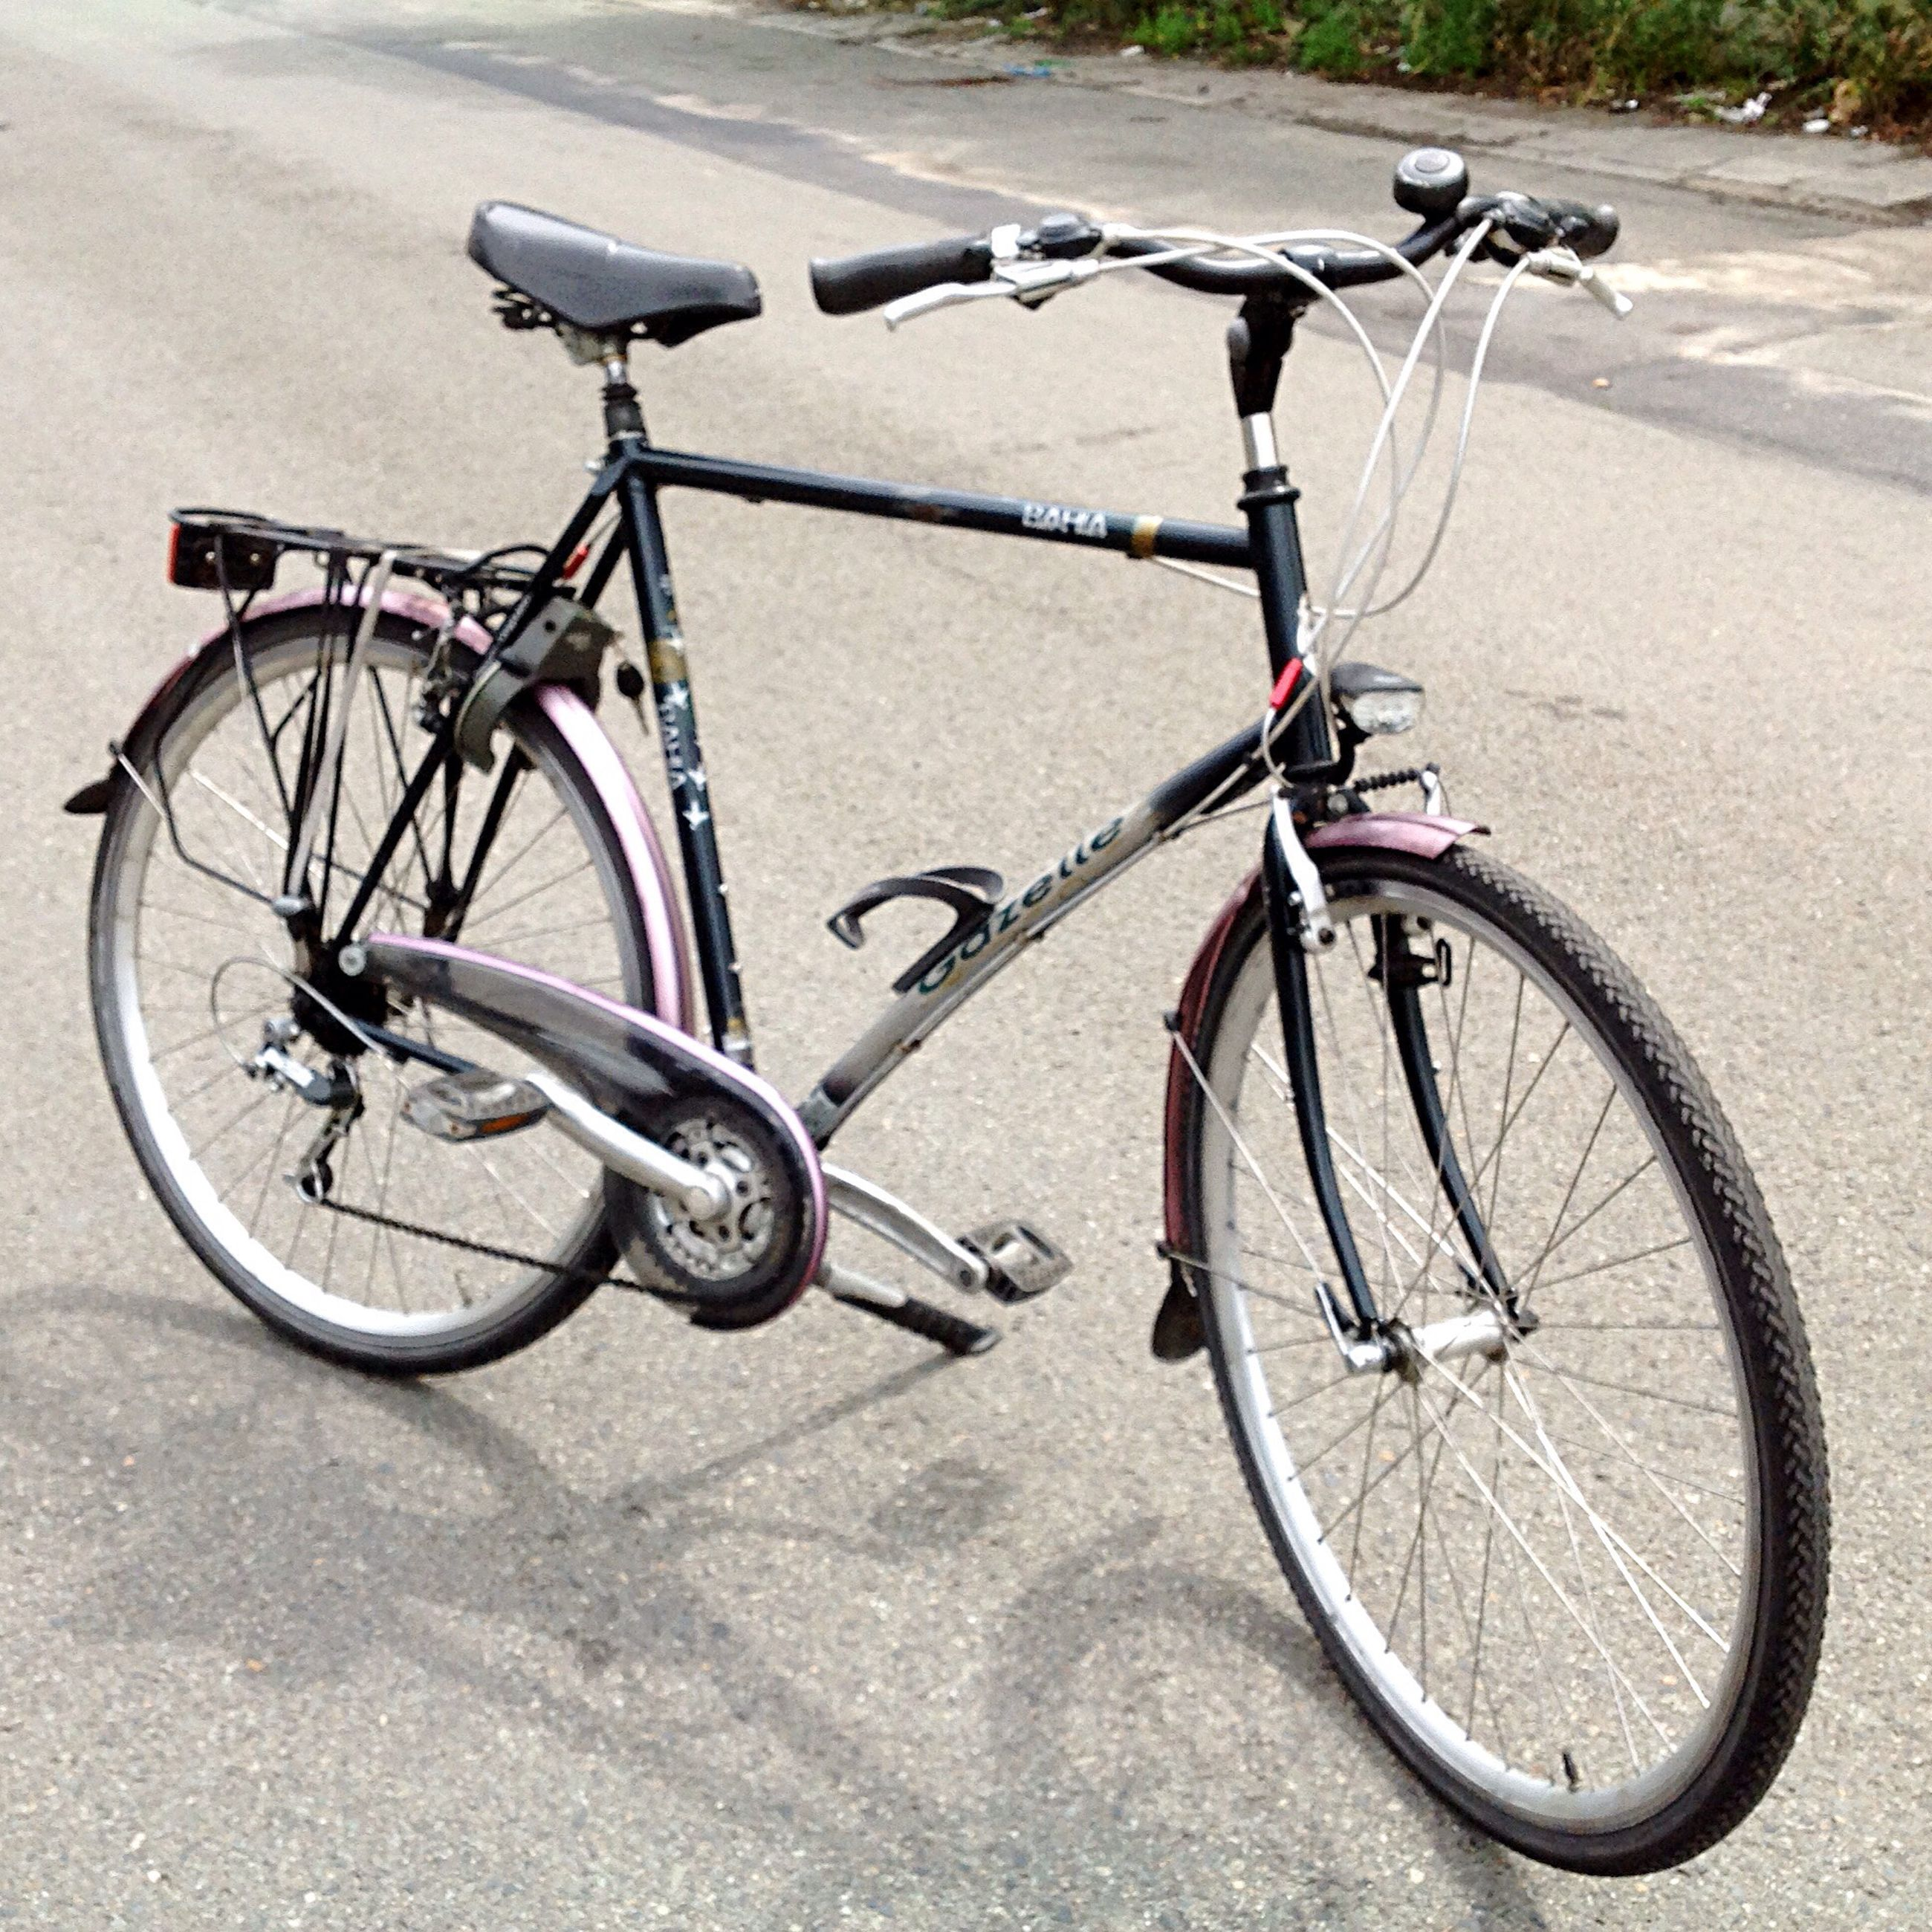 bicycle, transportation, mode of transport, stationary, land vehicle, bicycle rack, day, outdoors, no people